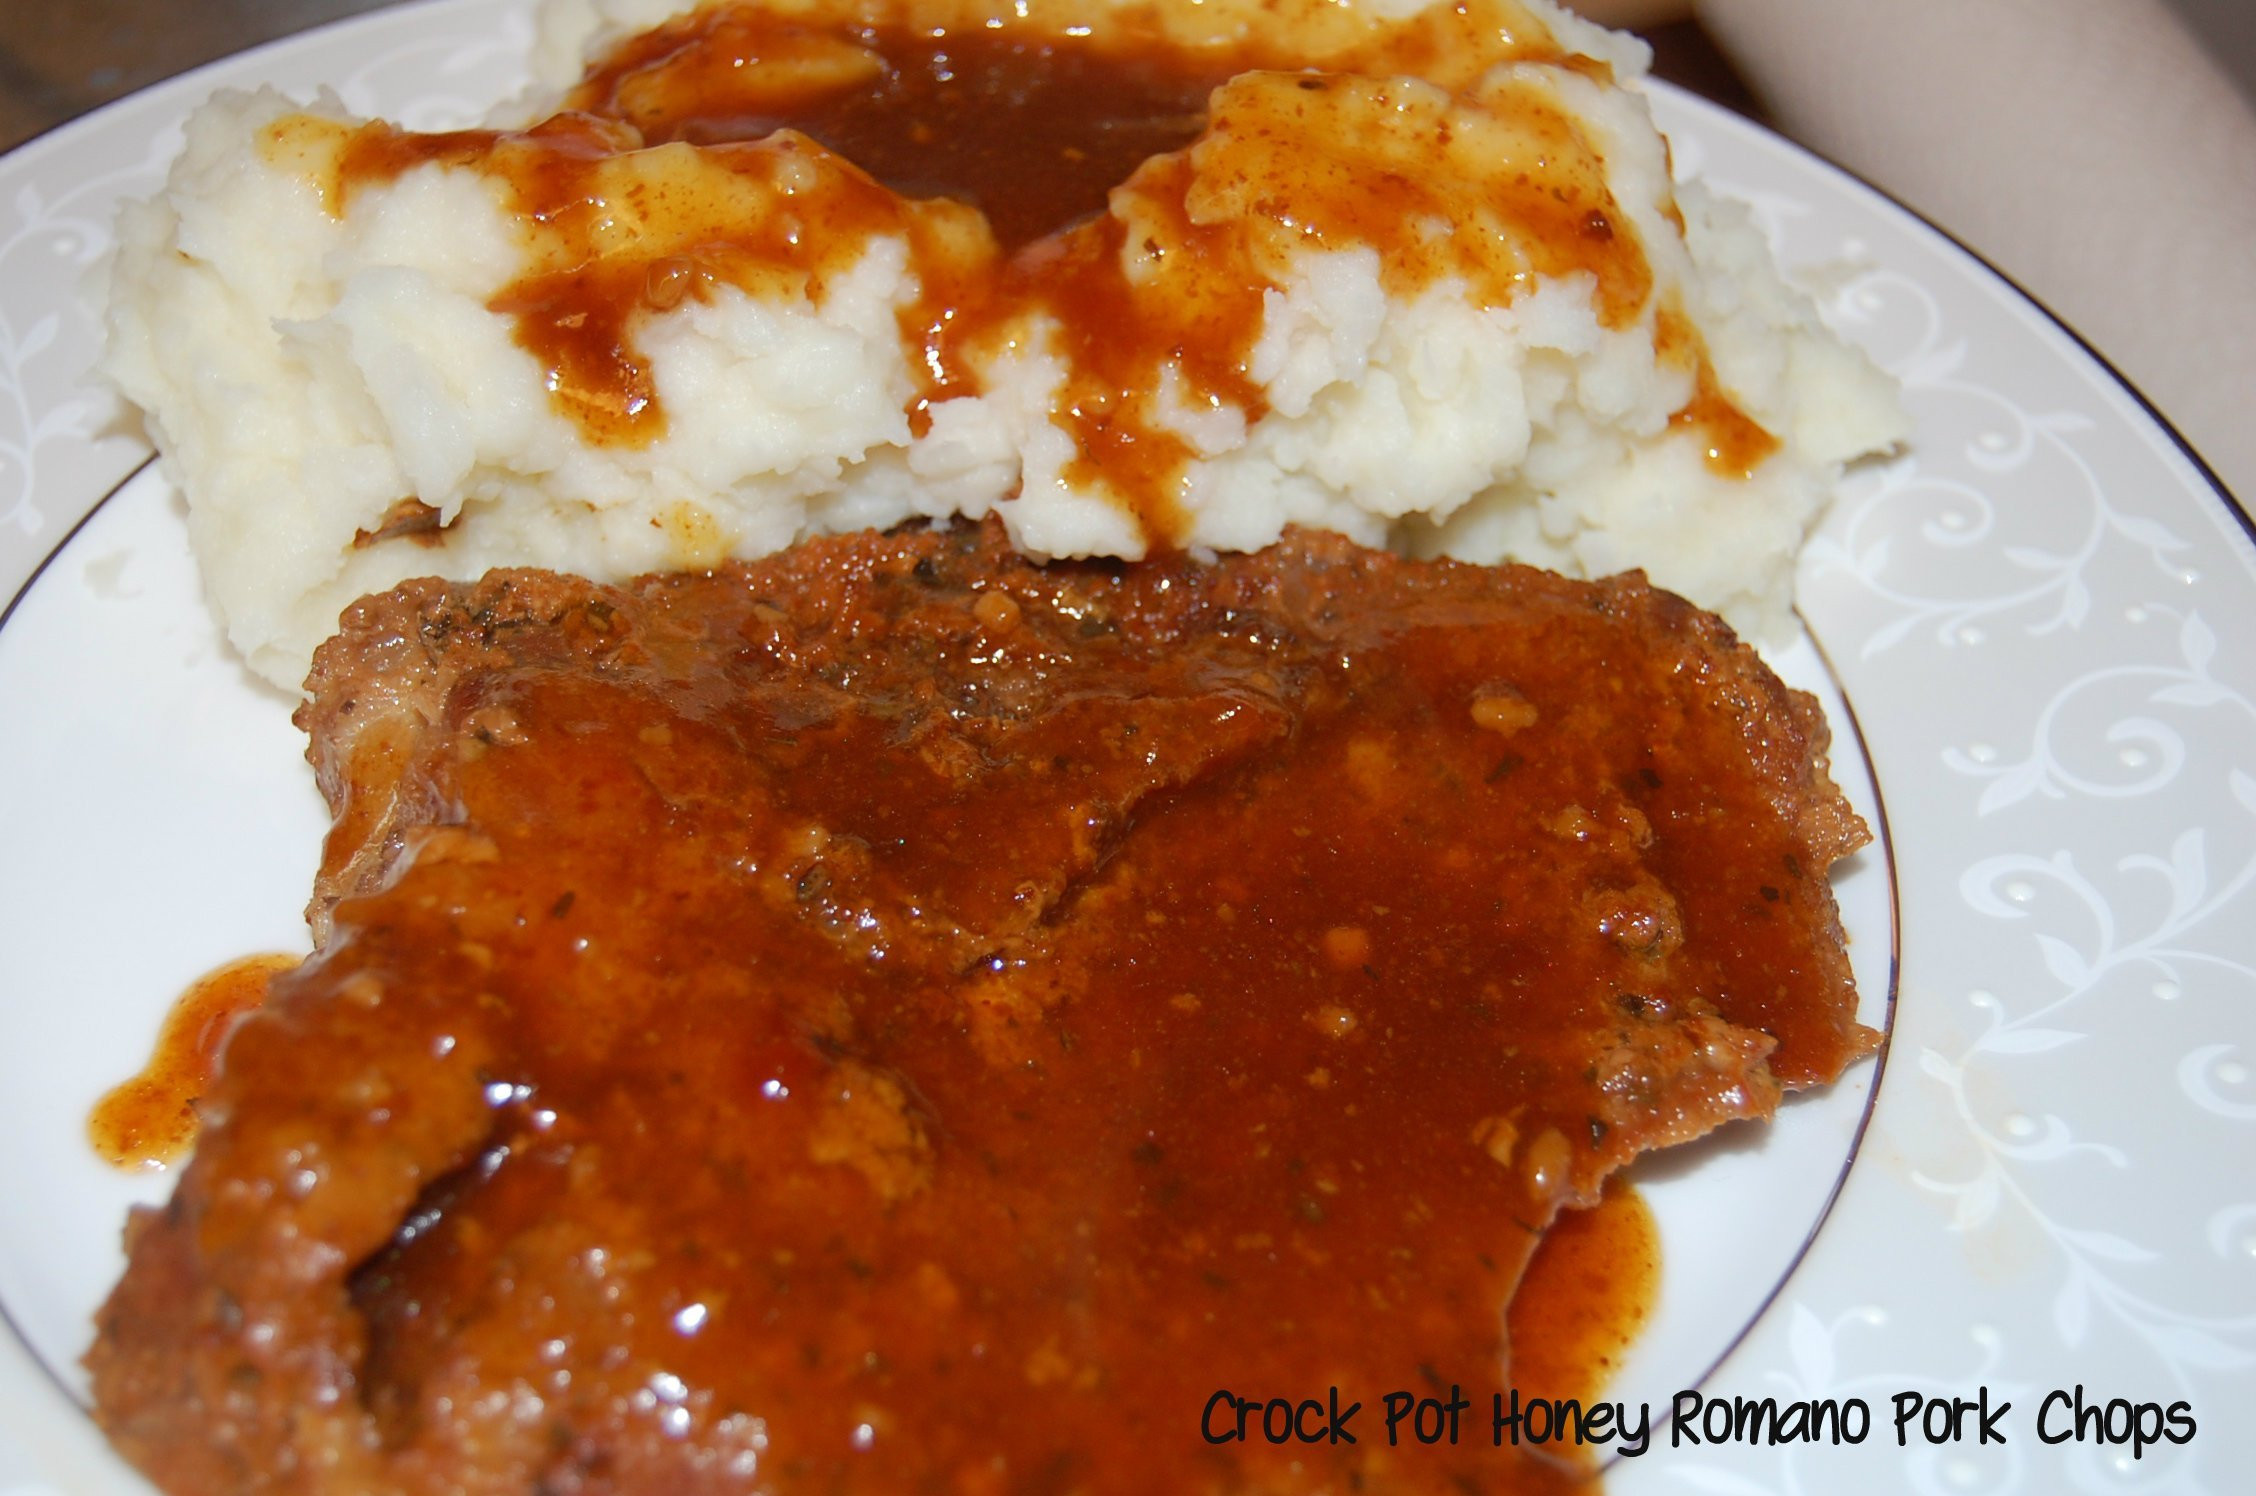 Pork Chops In The Crockpot  Crock Pot Honey Romano Pork Chops Who Needs A Cape